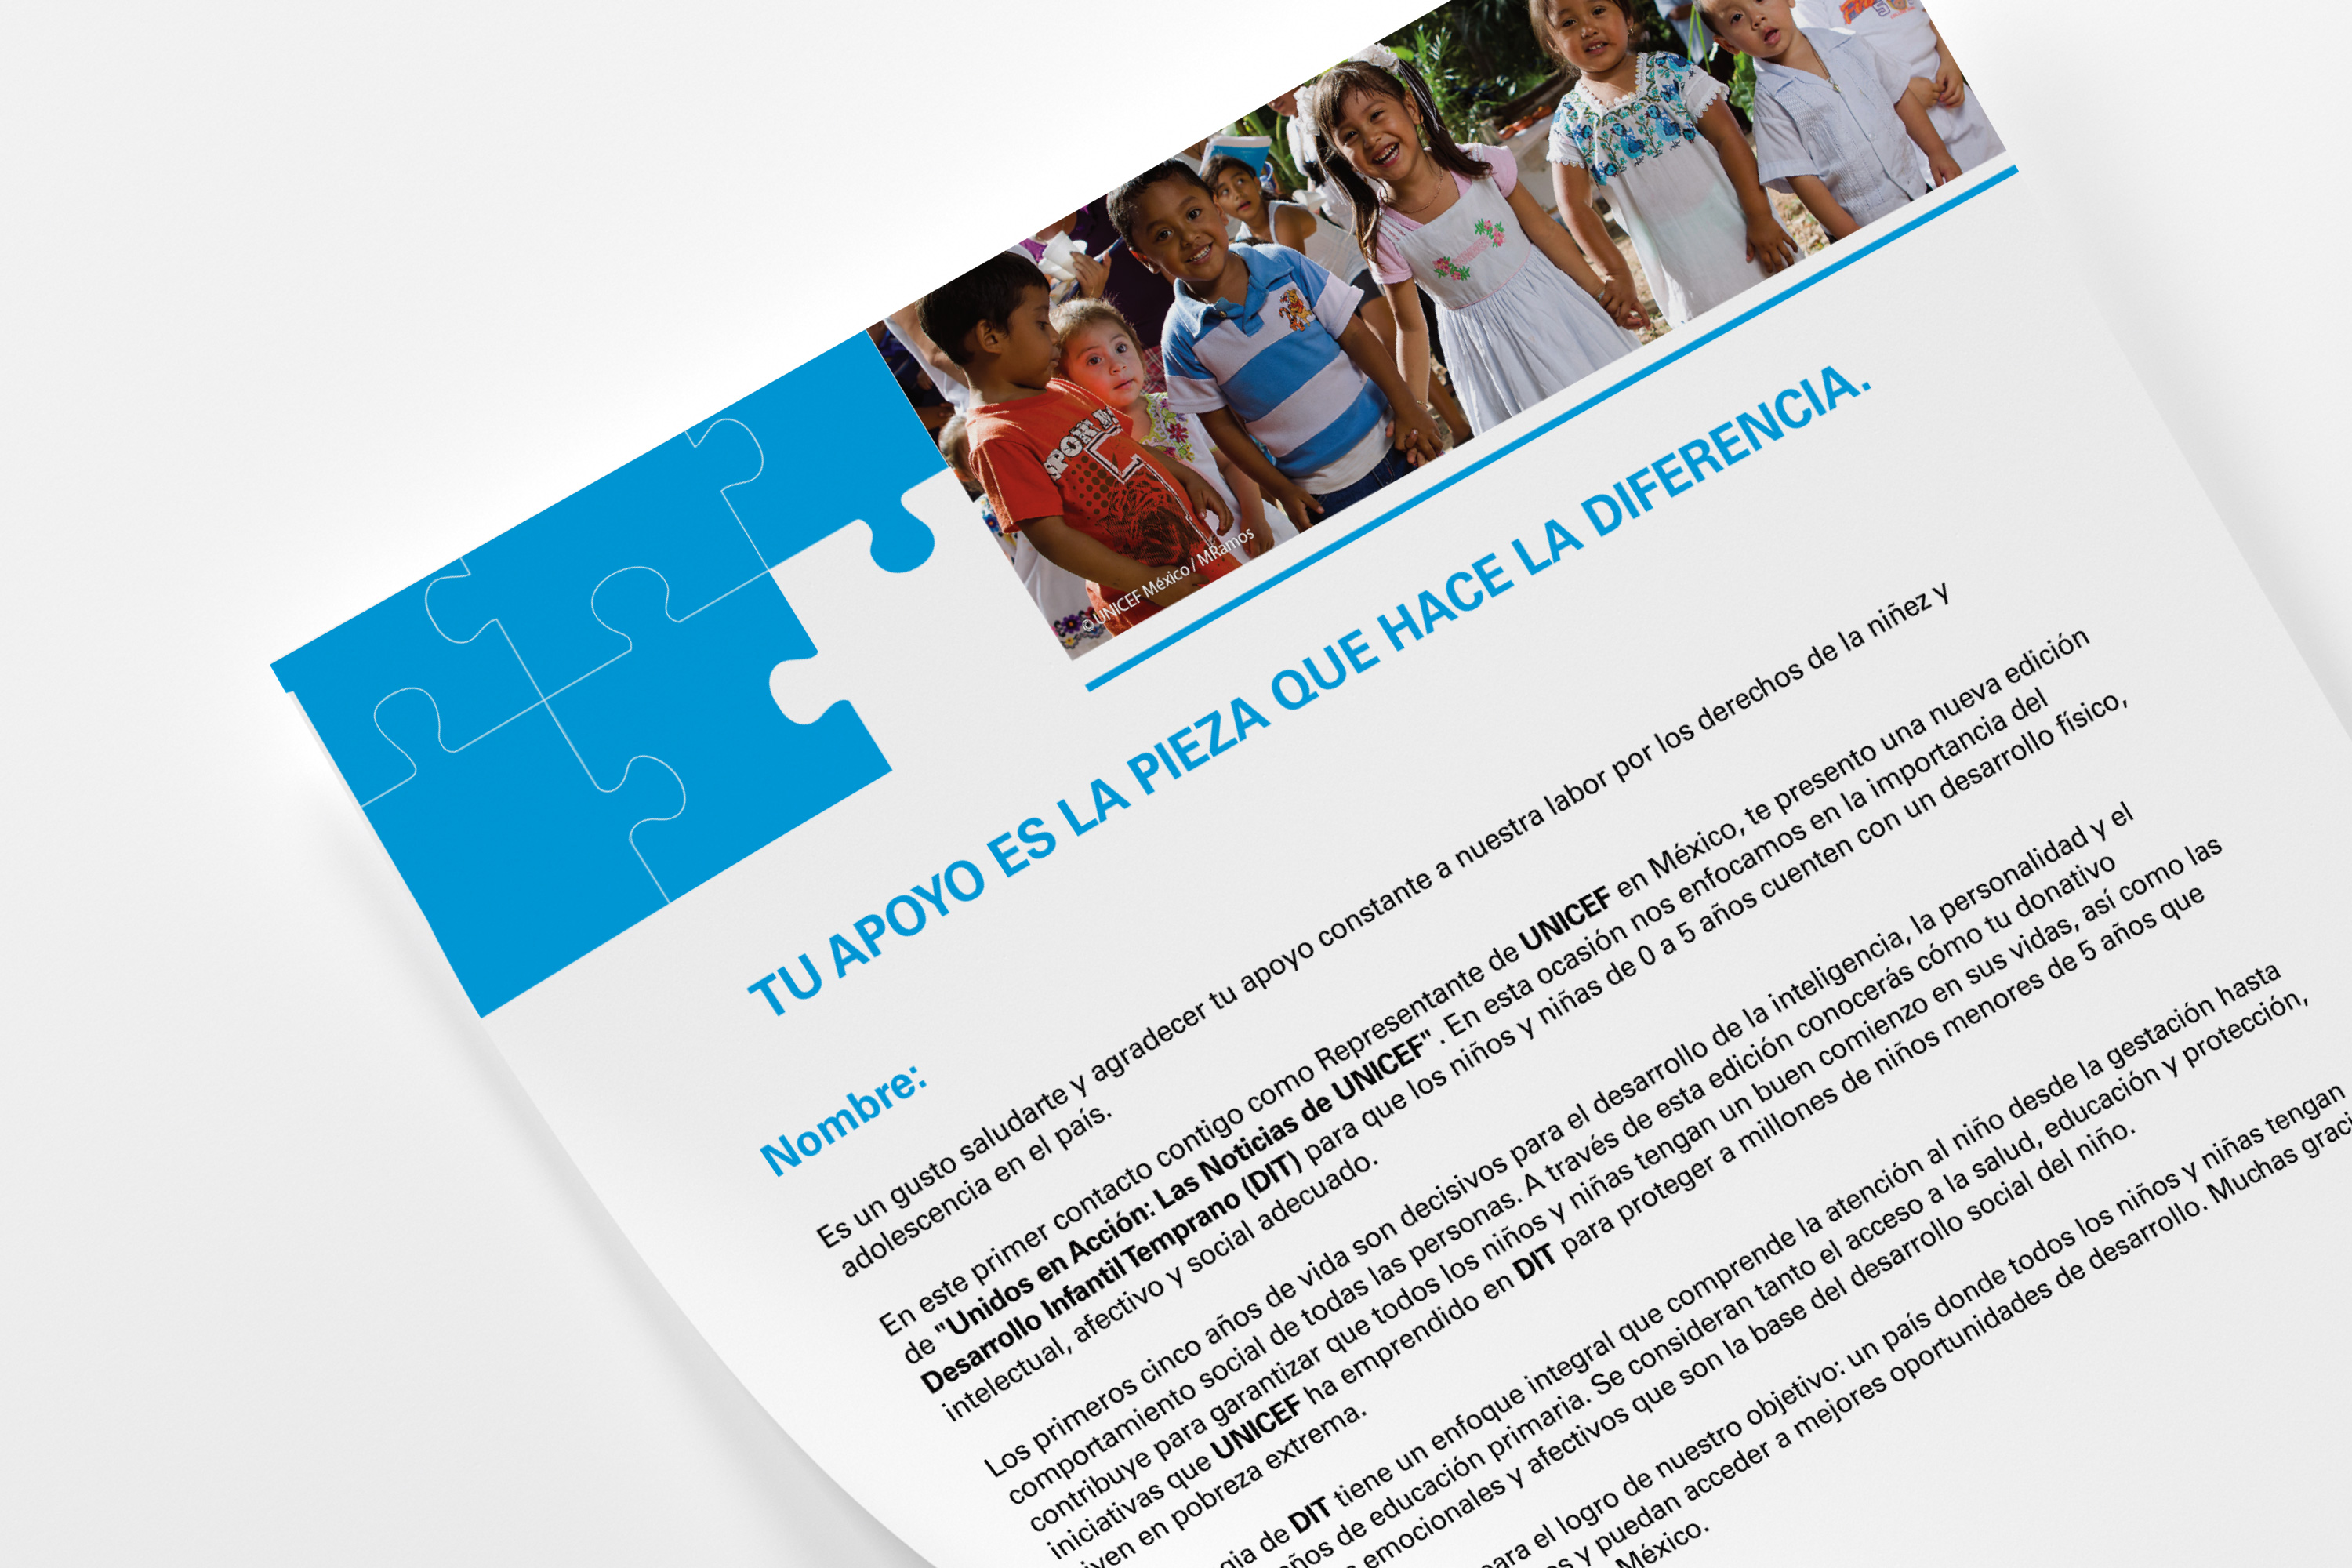 UNICEF-2-Informe-Anual-05